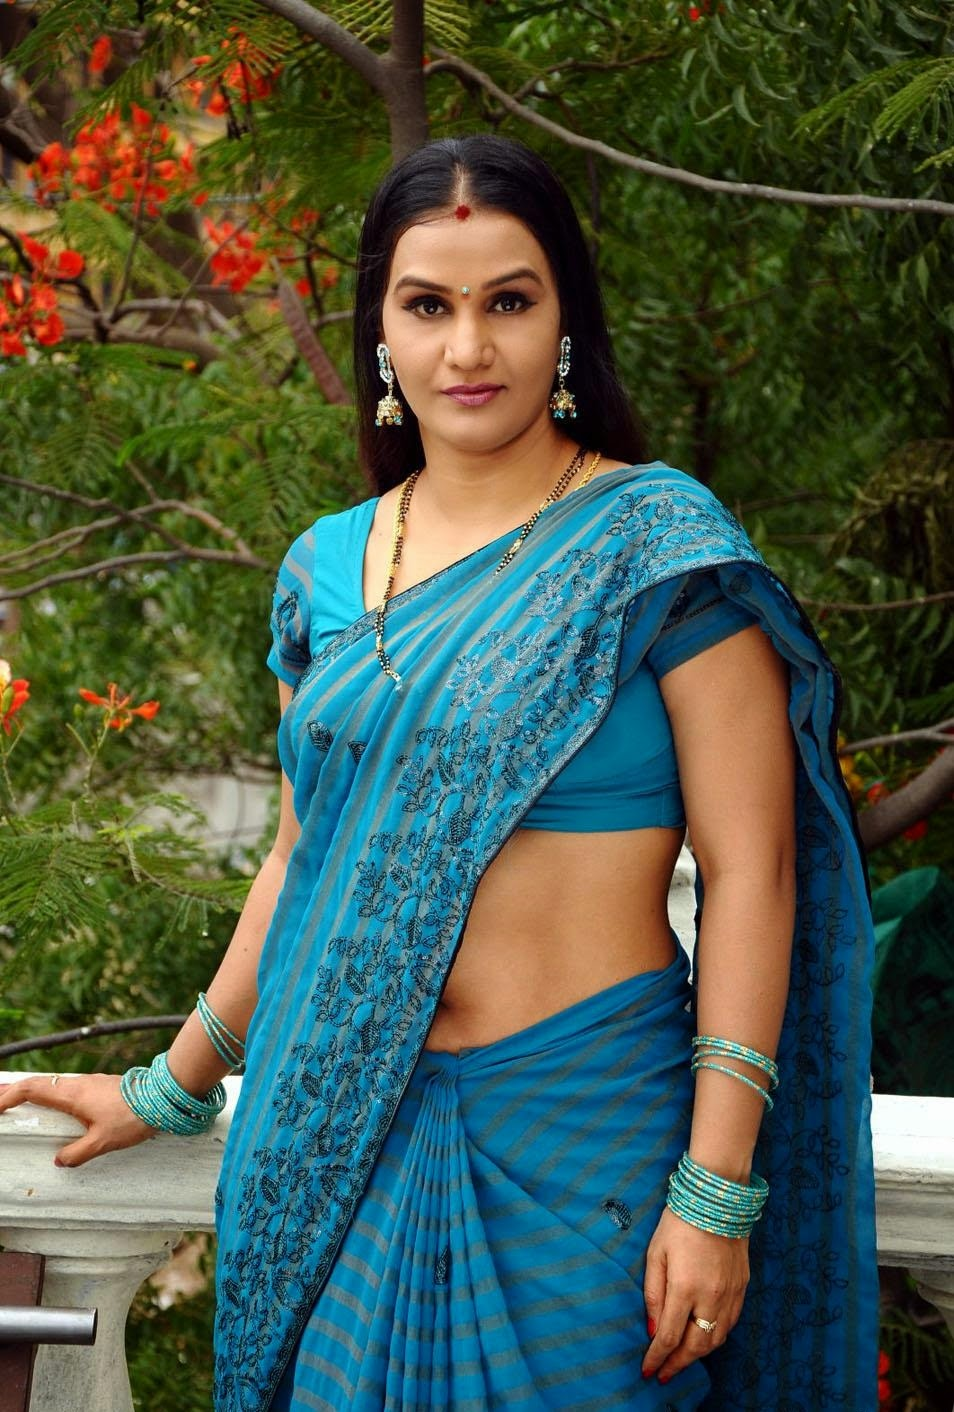 indian masala South actress